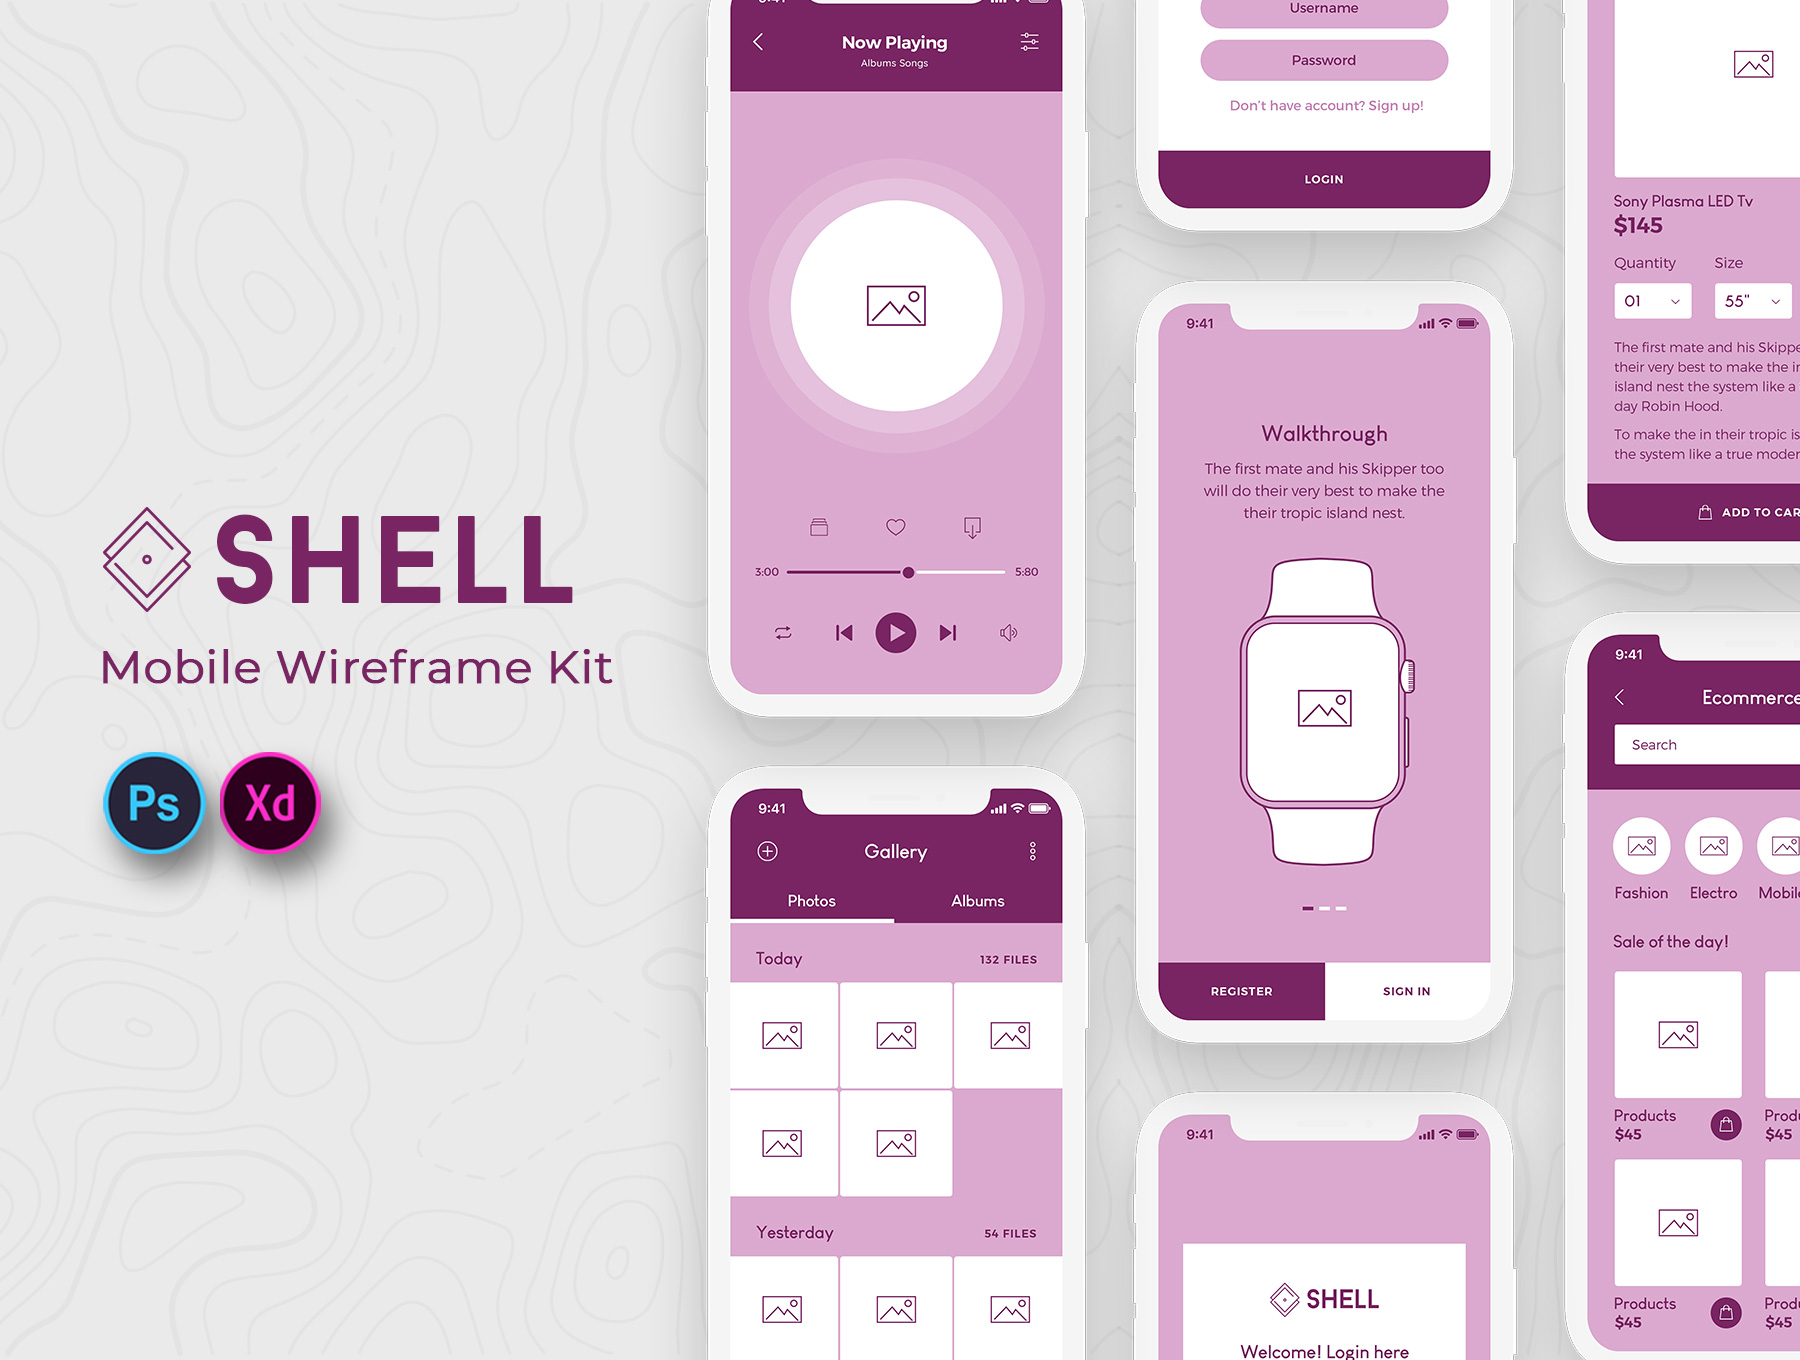 Shell Mobile Wireframe Kit